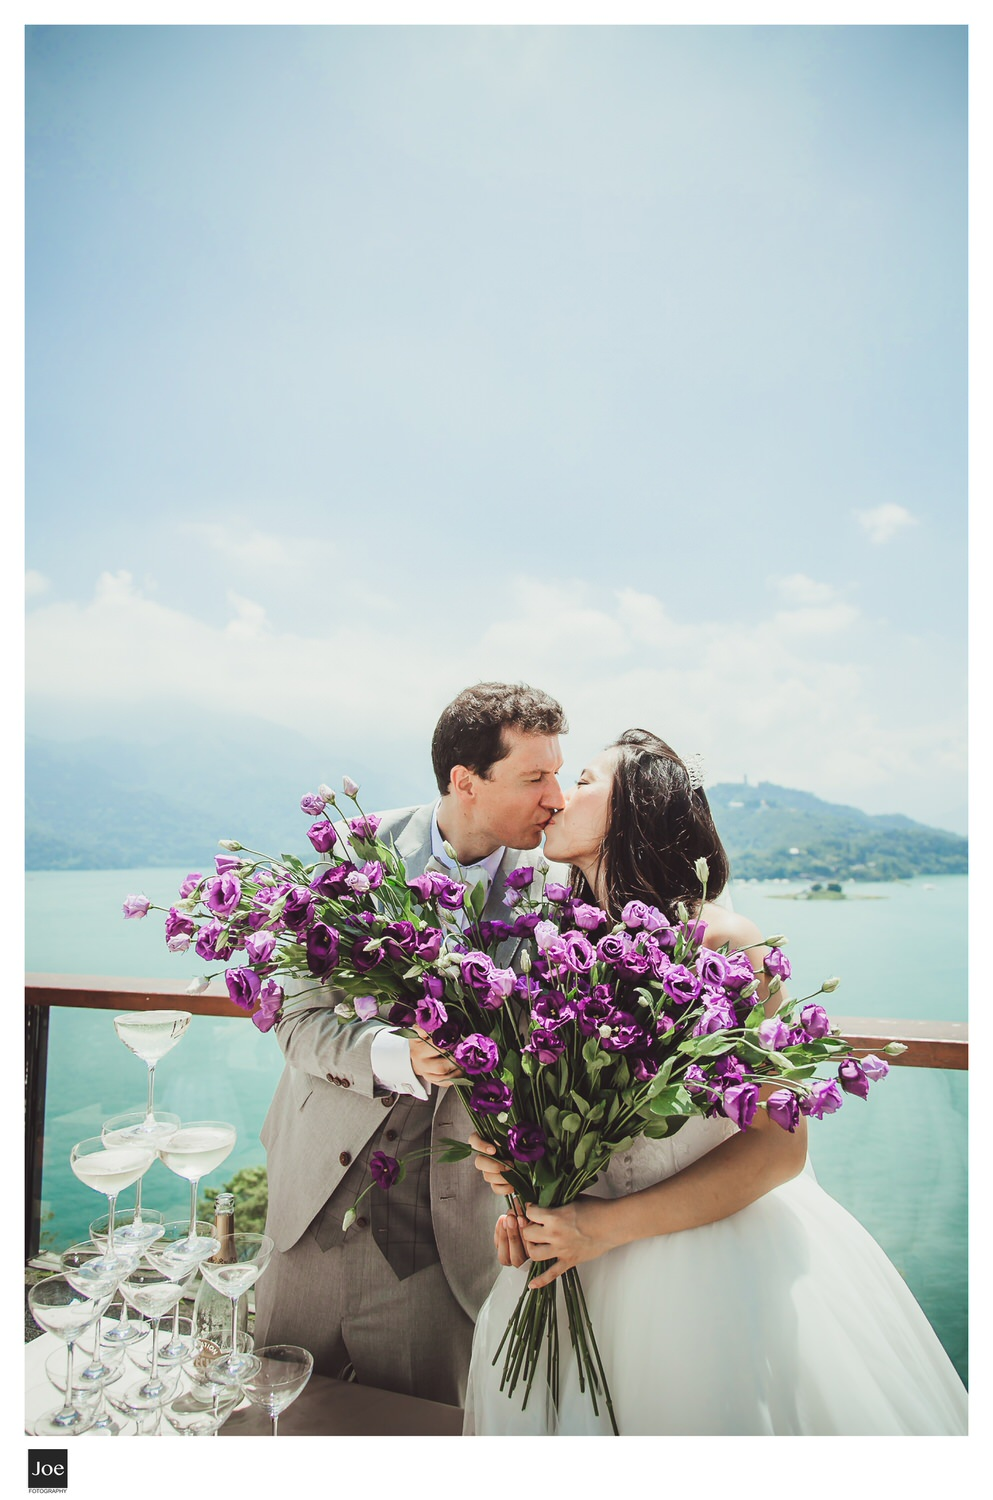 joe-fotography-the-lalu-sun-moon-lake-wedding-kay-geoffrey-212.jpg